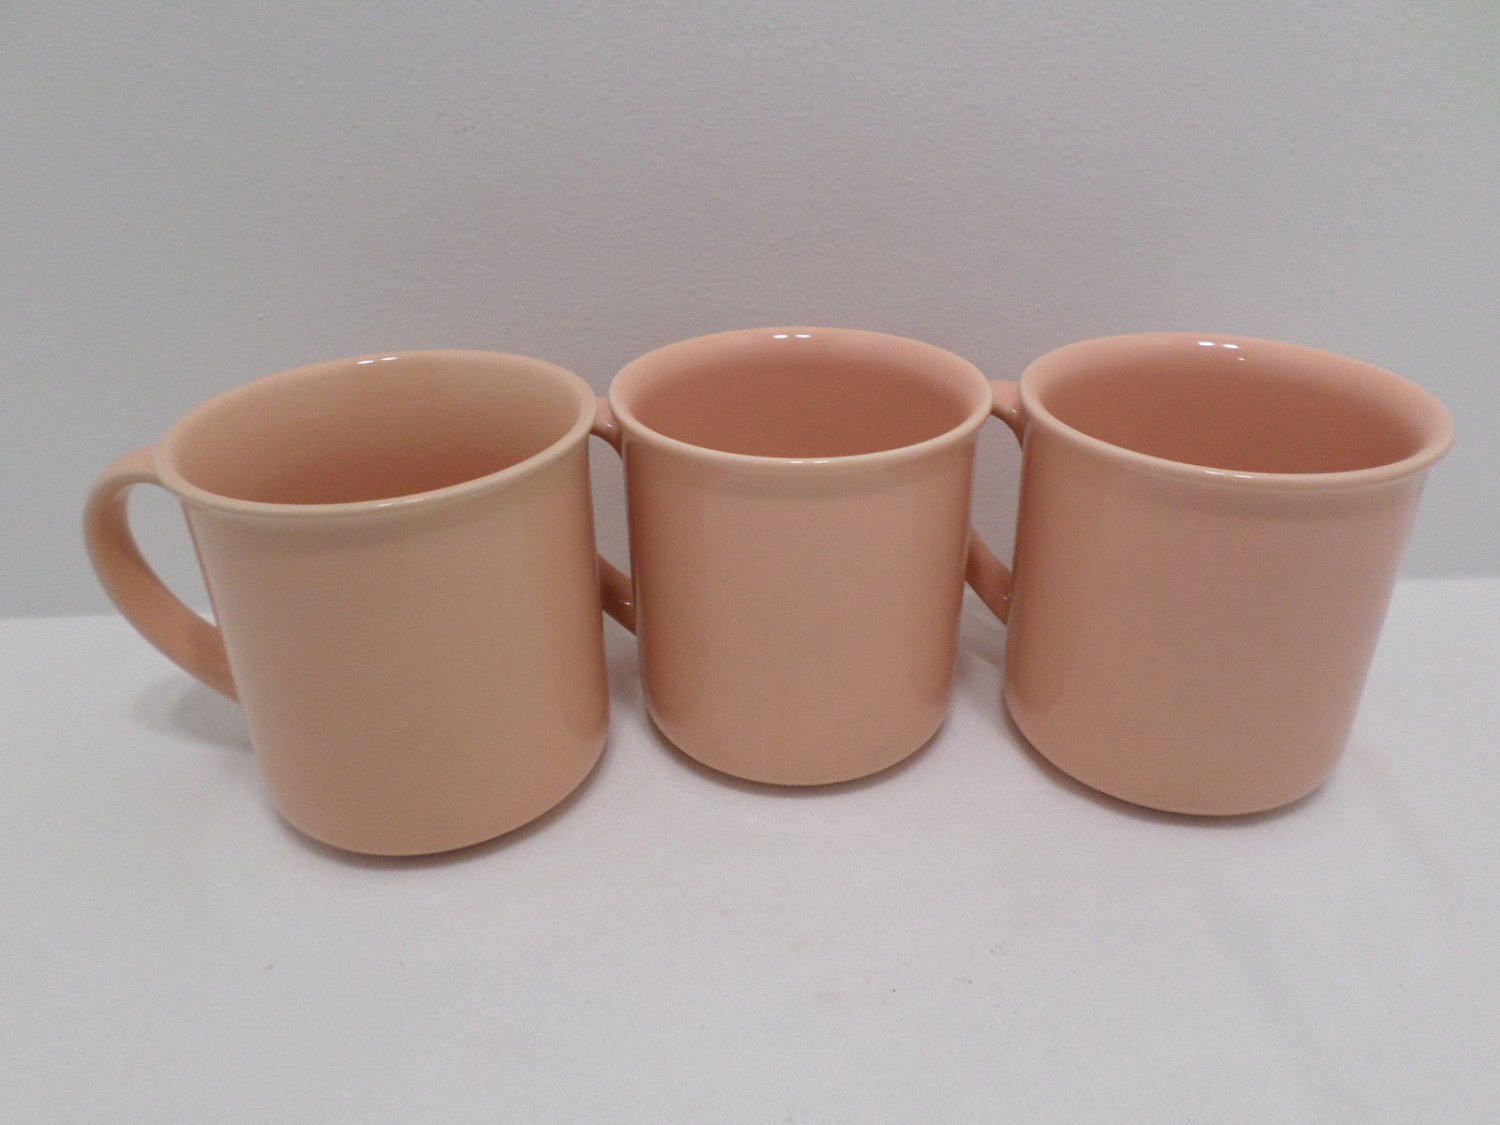 Coffee Mugs Pink Stoneware made in Japan Lot of 3